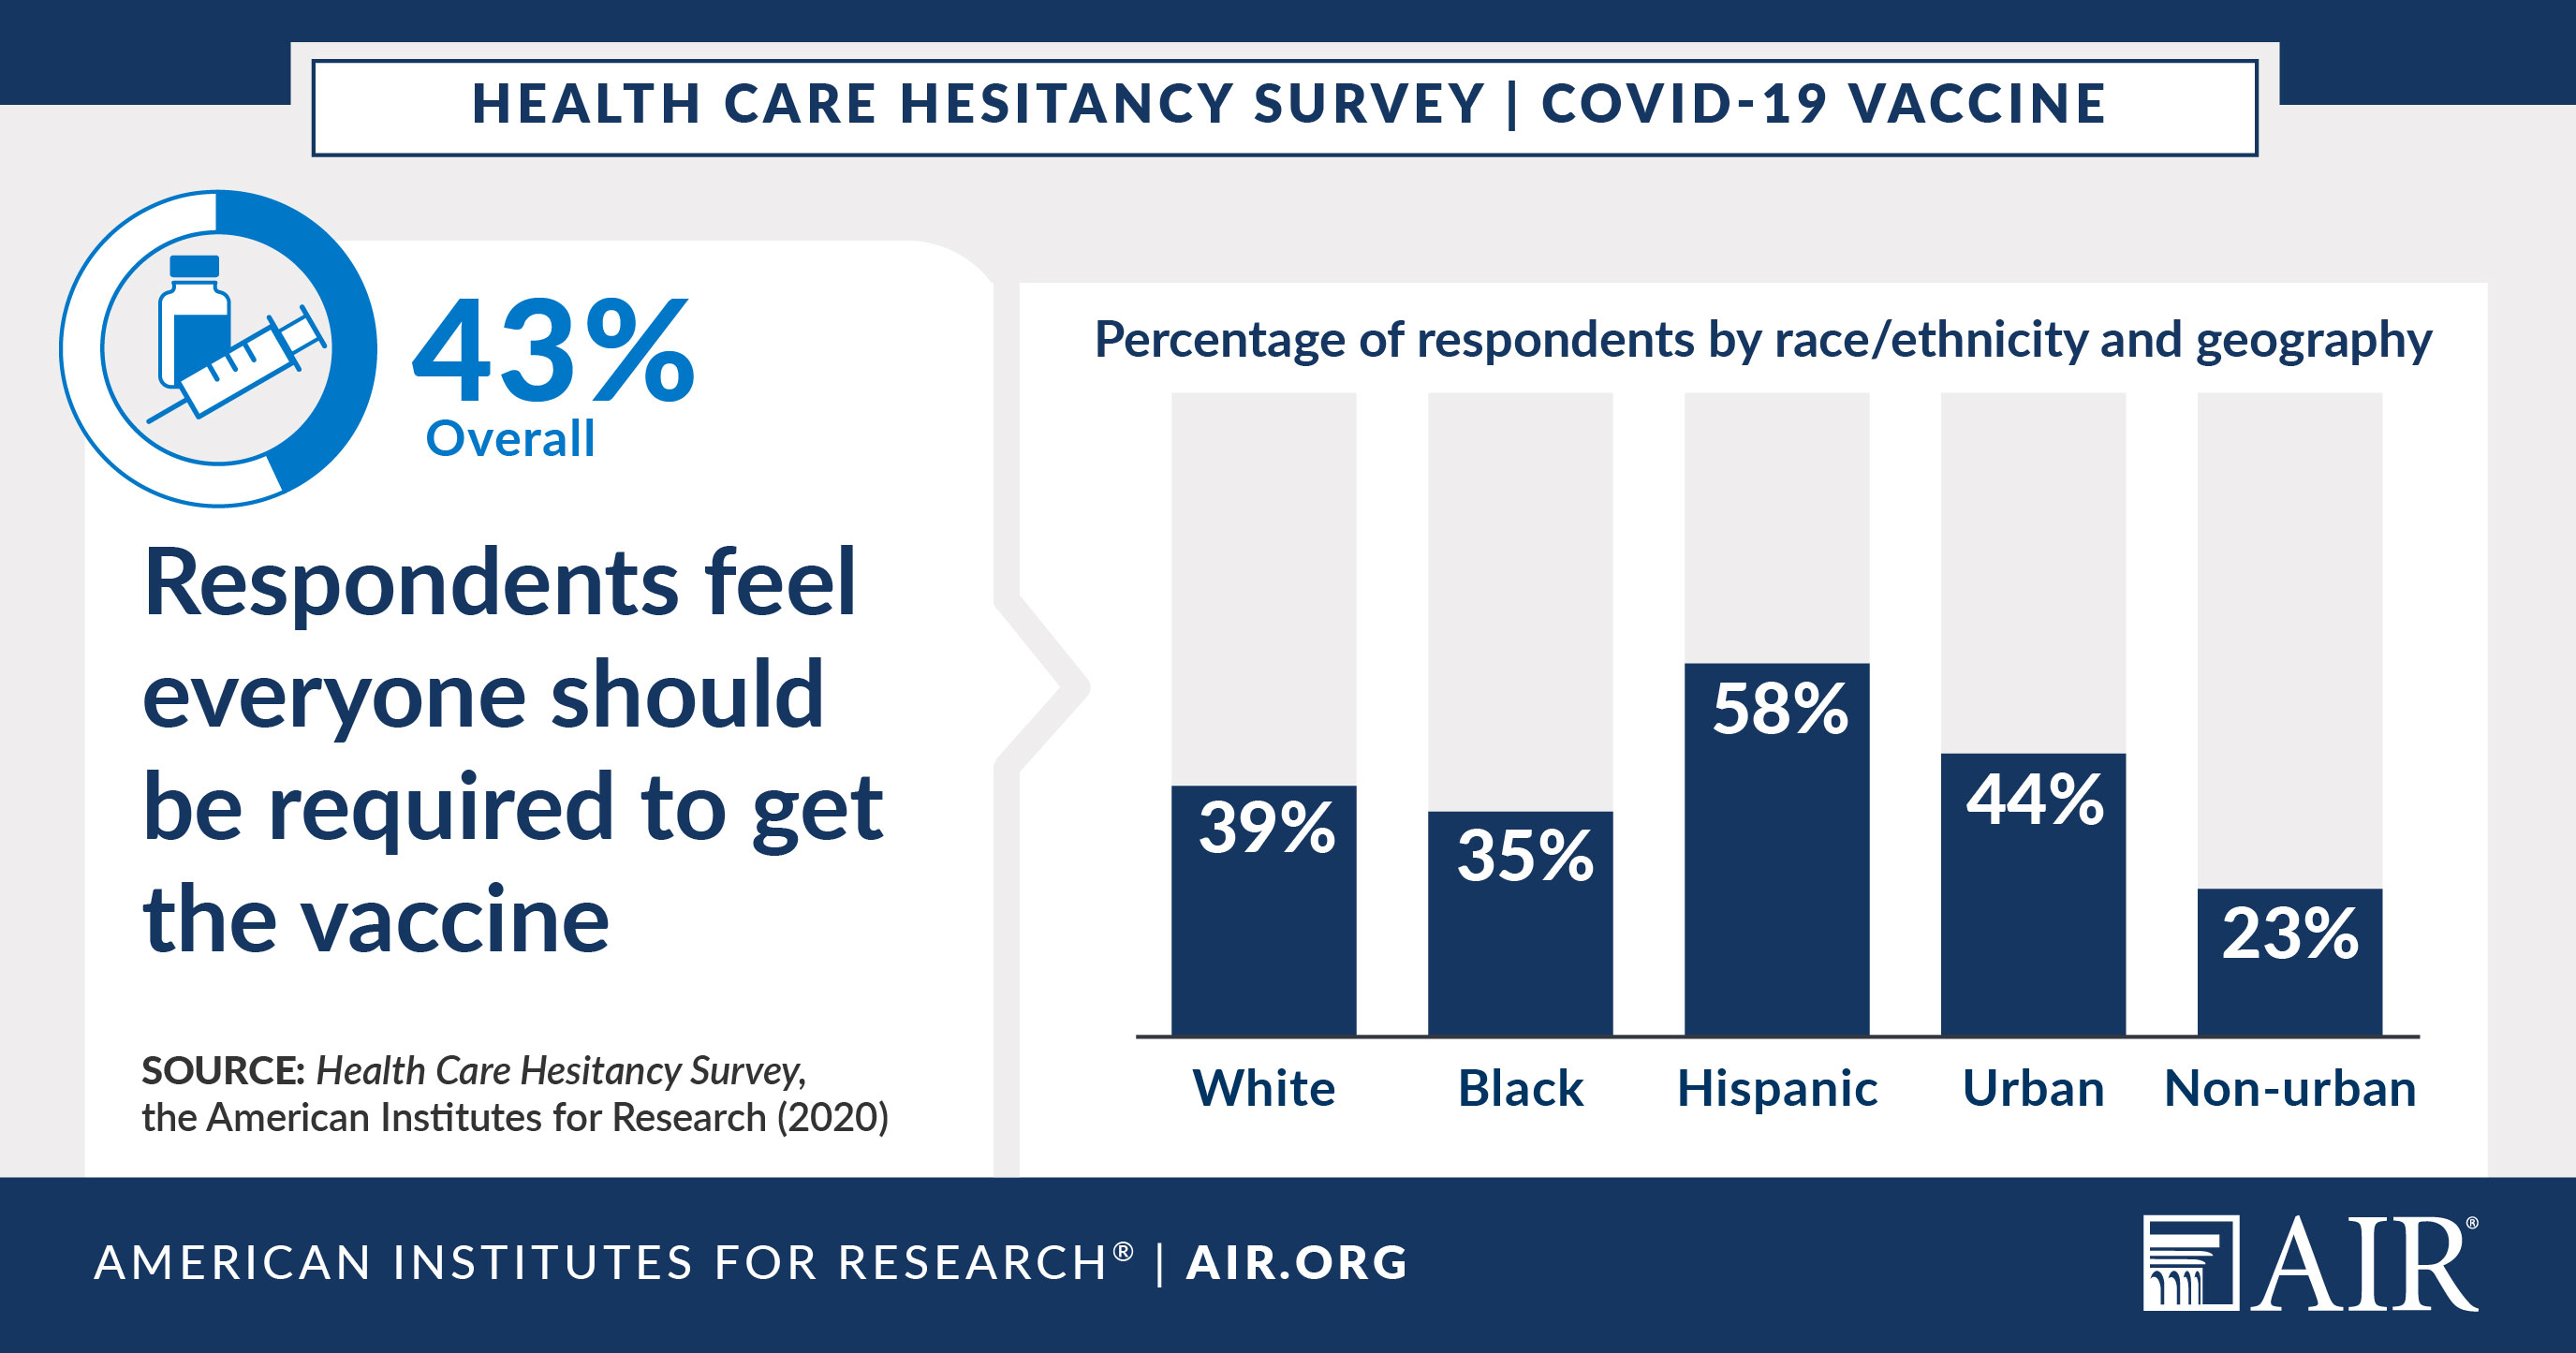 Infographic: 43% of respondents feel everyone should be required to get the vaccine